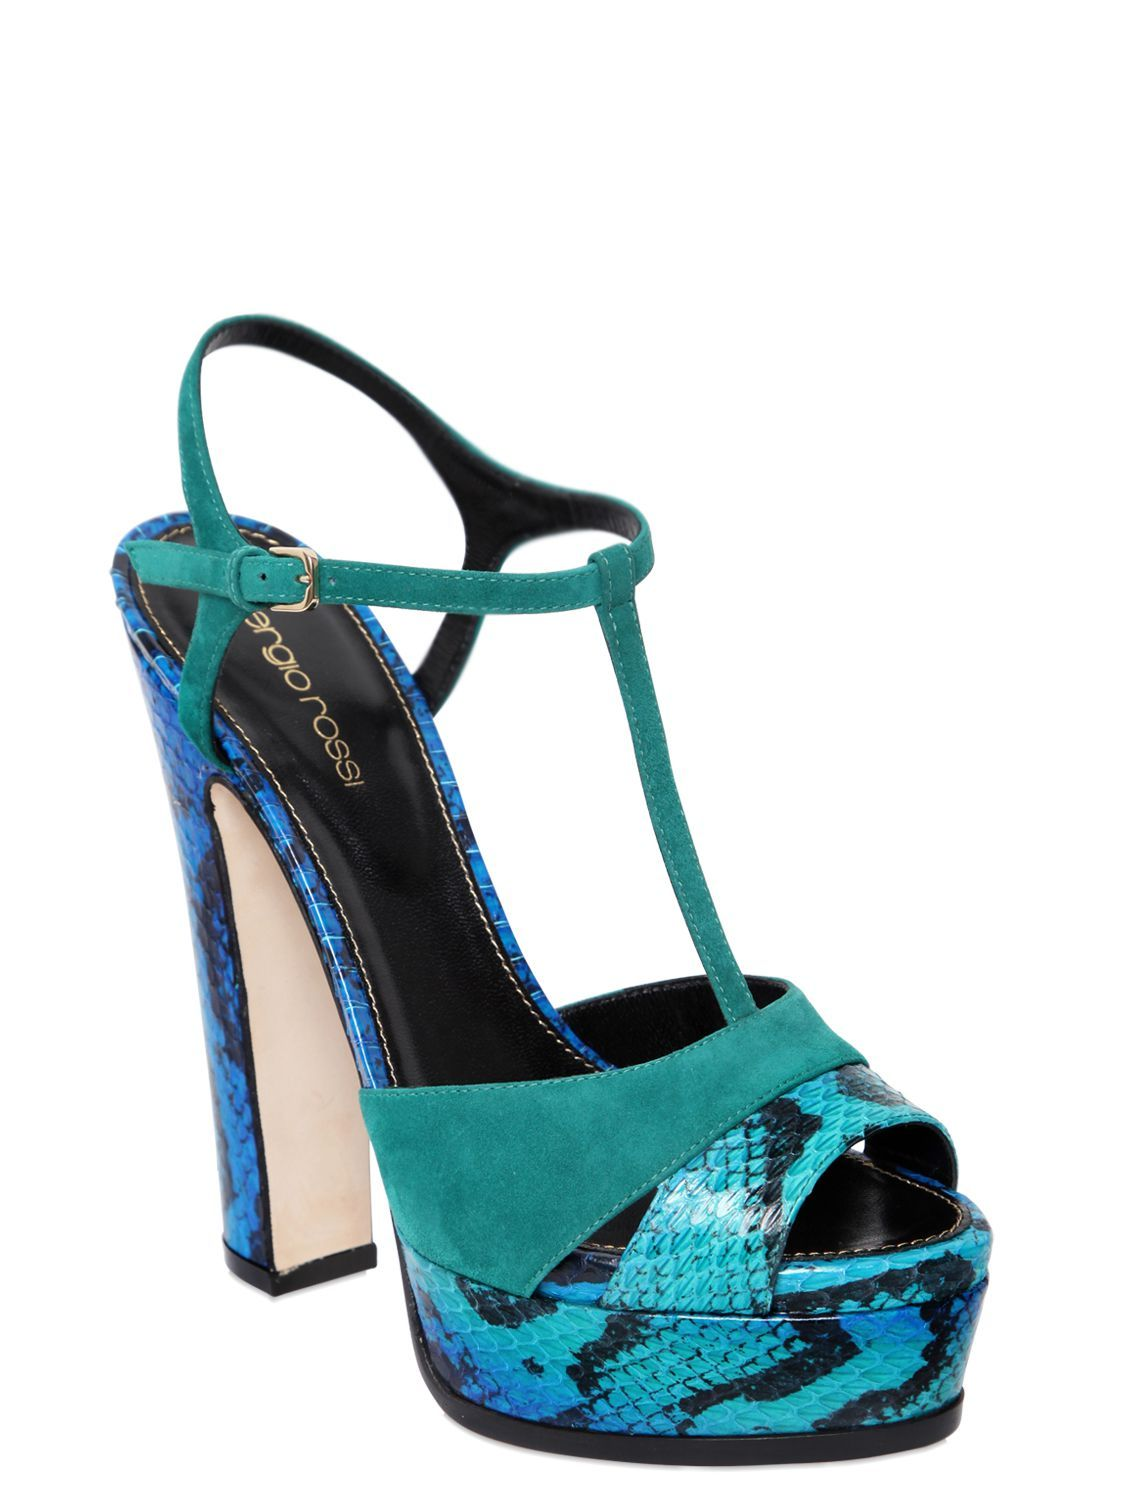 Sergio Rossi Edwige sandals 100% Guaranteed Cheap Online Outlet Cheap Price VYbbHD